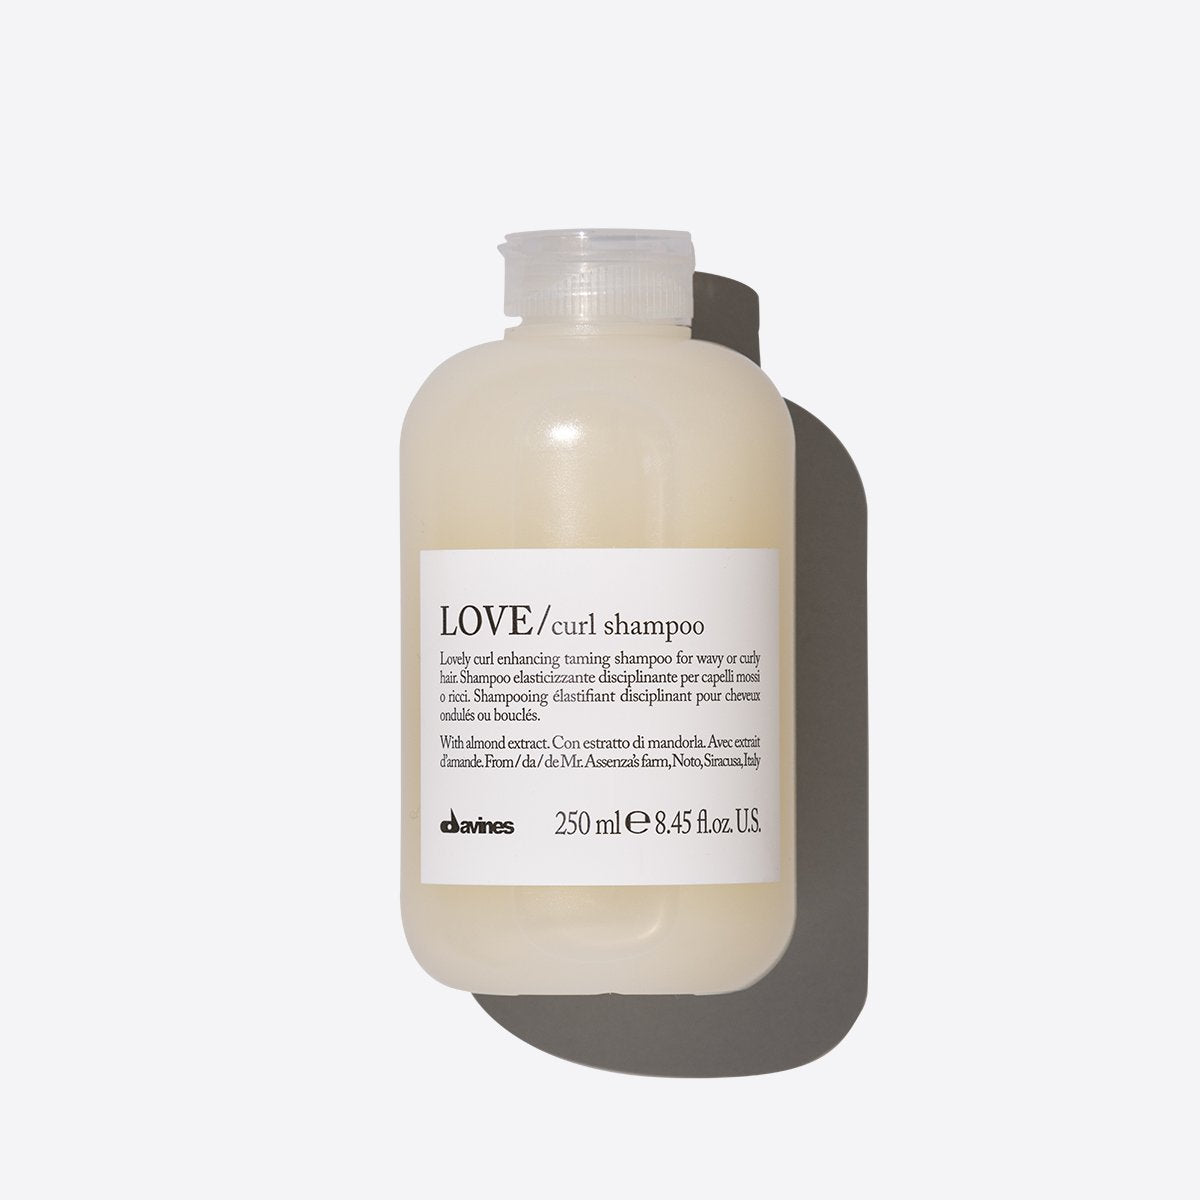 LOVE CURL Shampoo by Davines